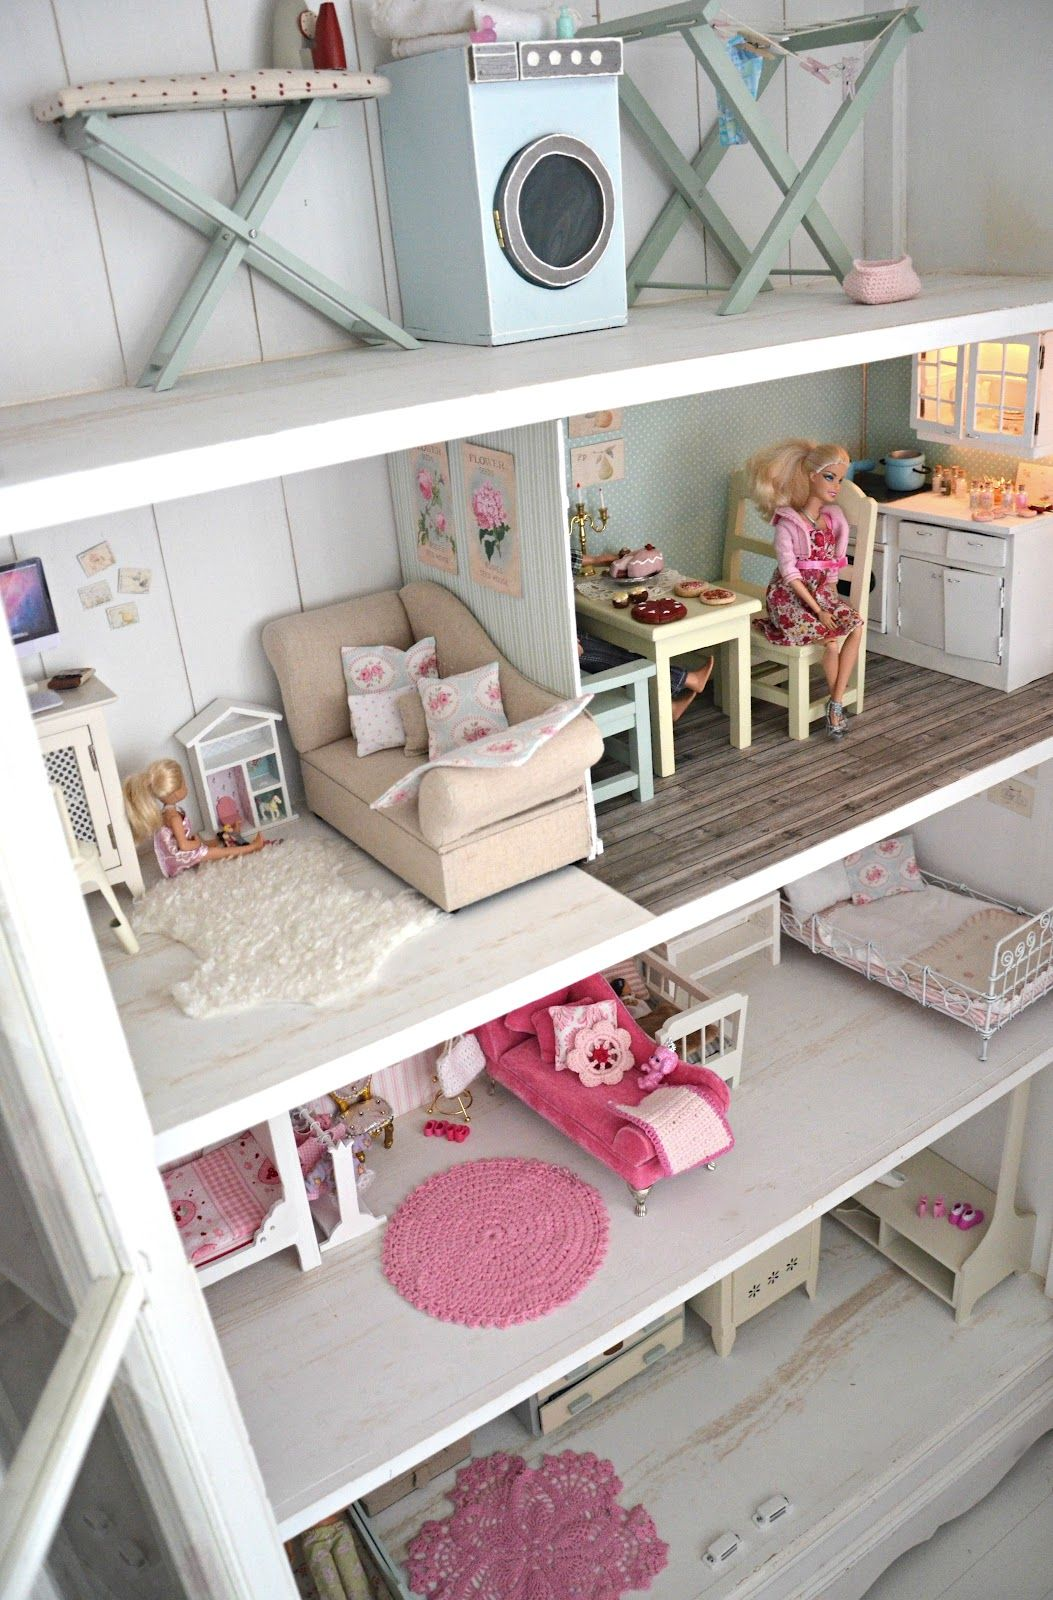 Homemade Barbie Furniture On Gorgeous Diy Barbie Doll House Beautiful Little Life Knitting Sewing Knitting